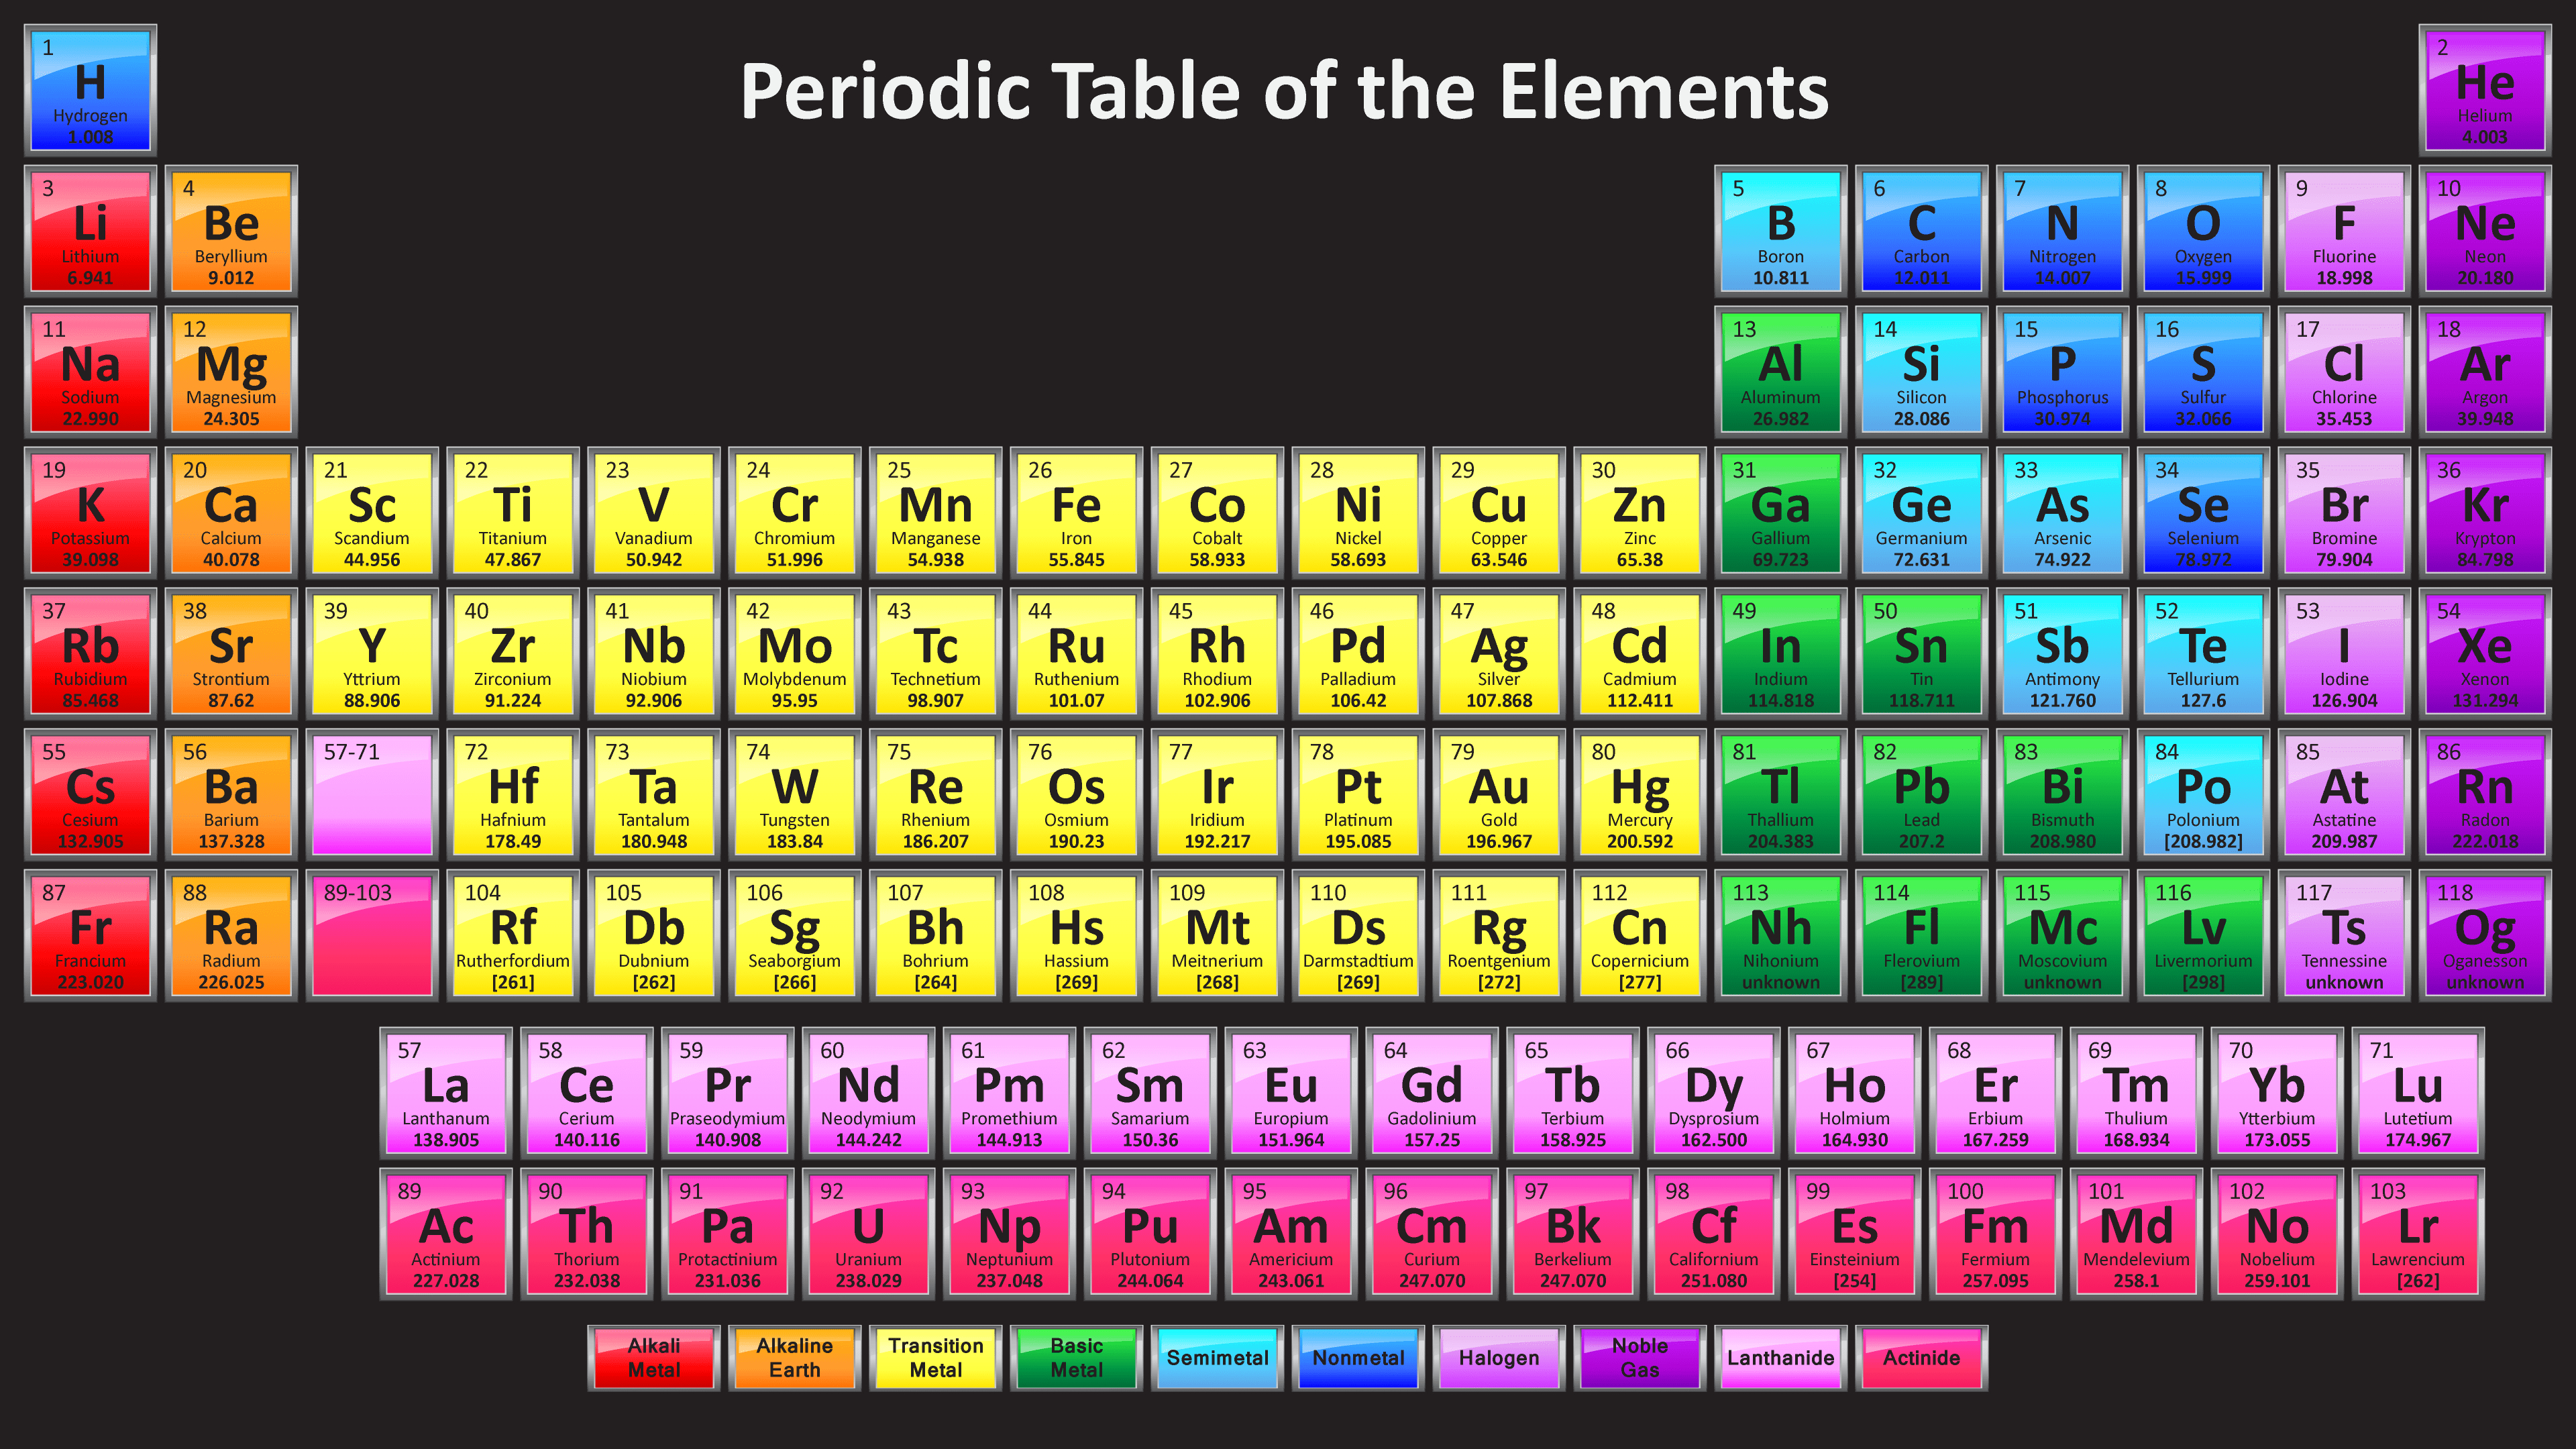 diagram of modern periodic table 3 phase wiring australia colorful with 118 element names elements dark background